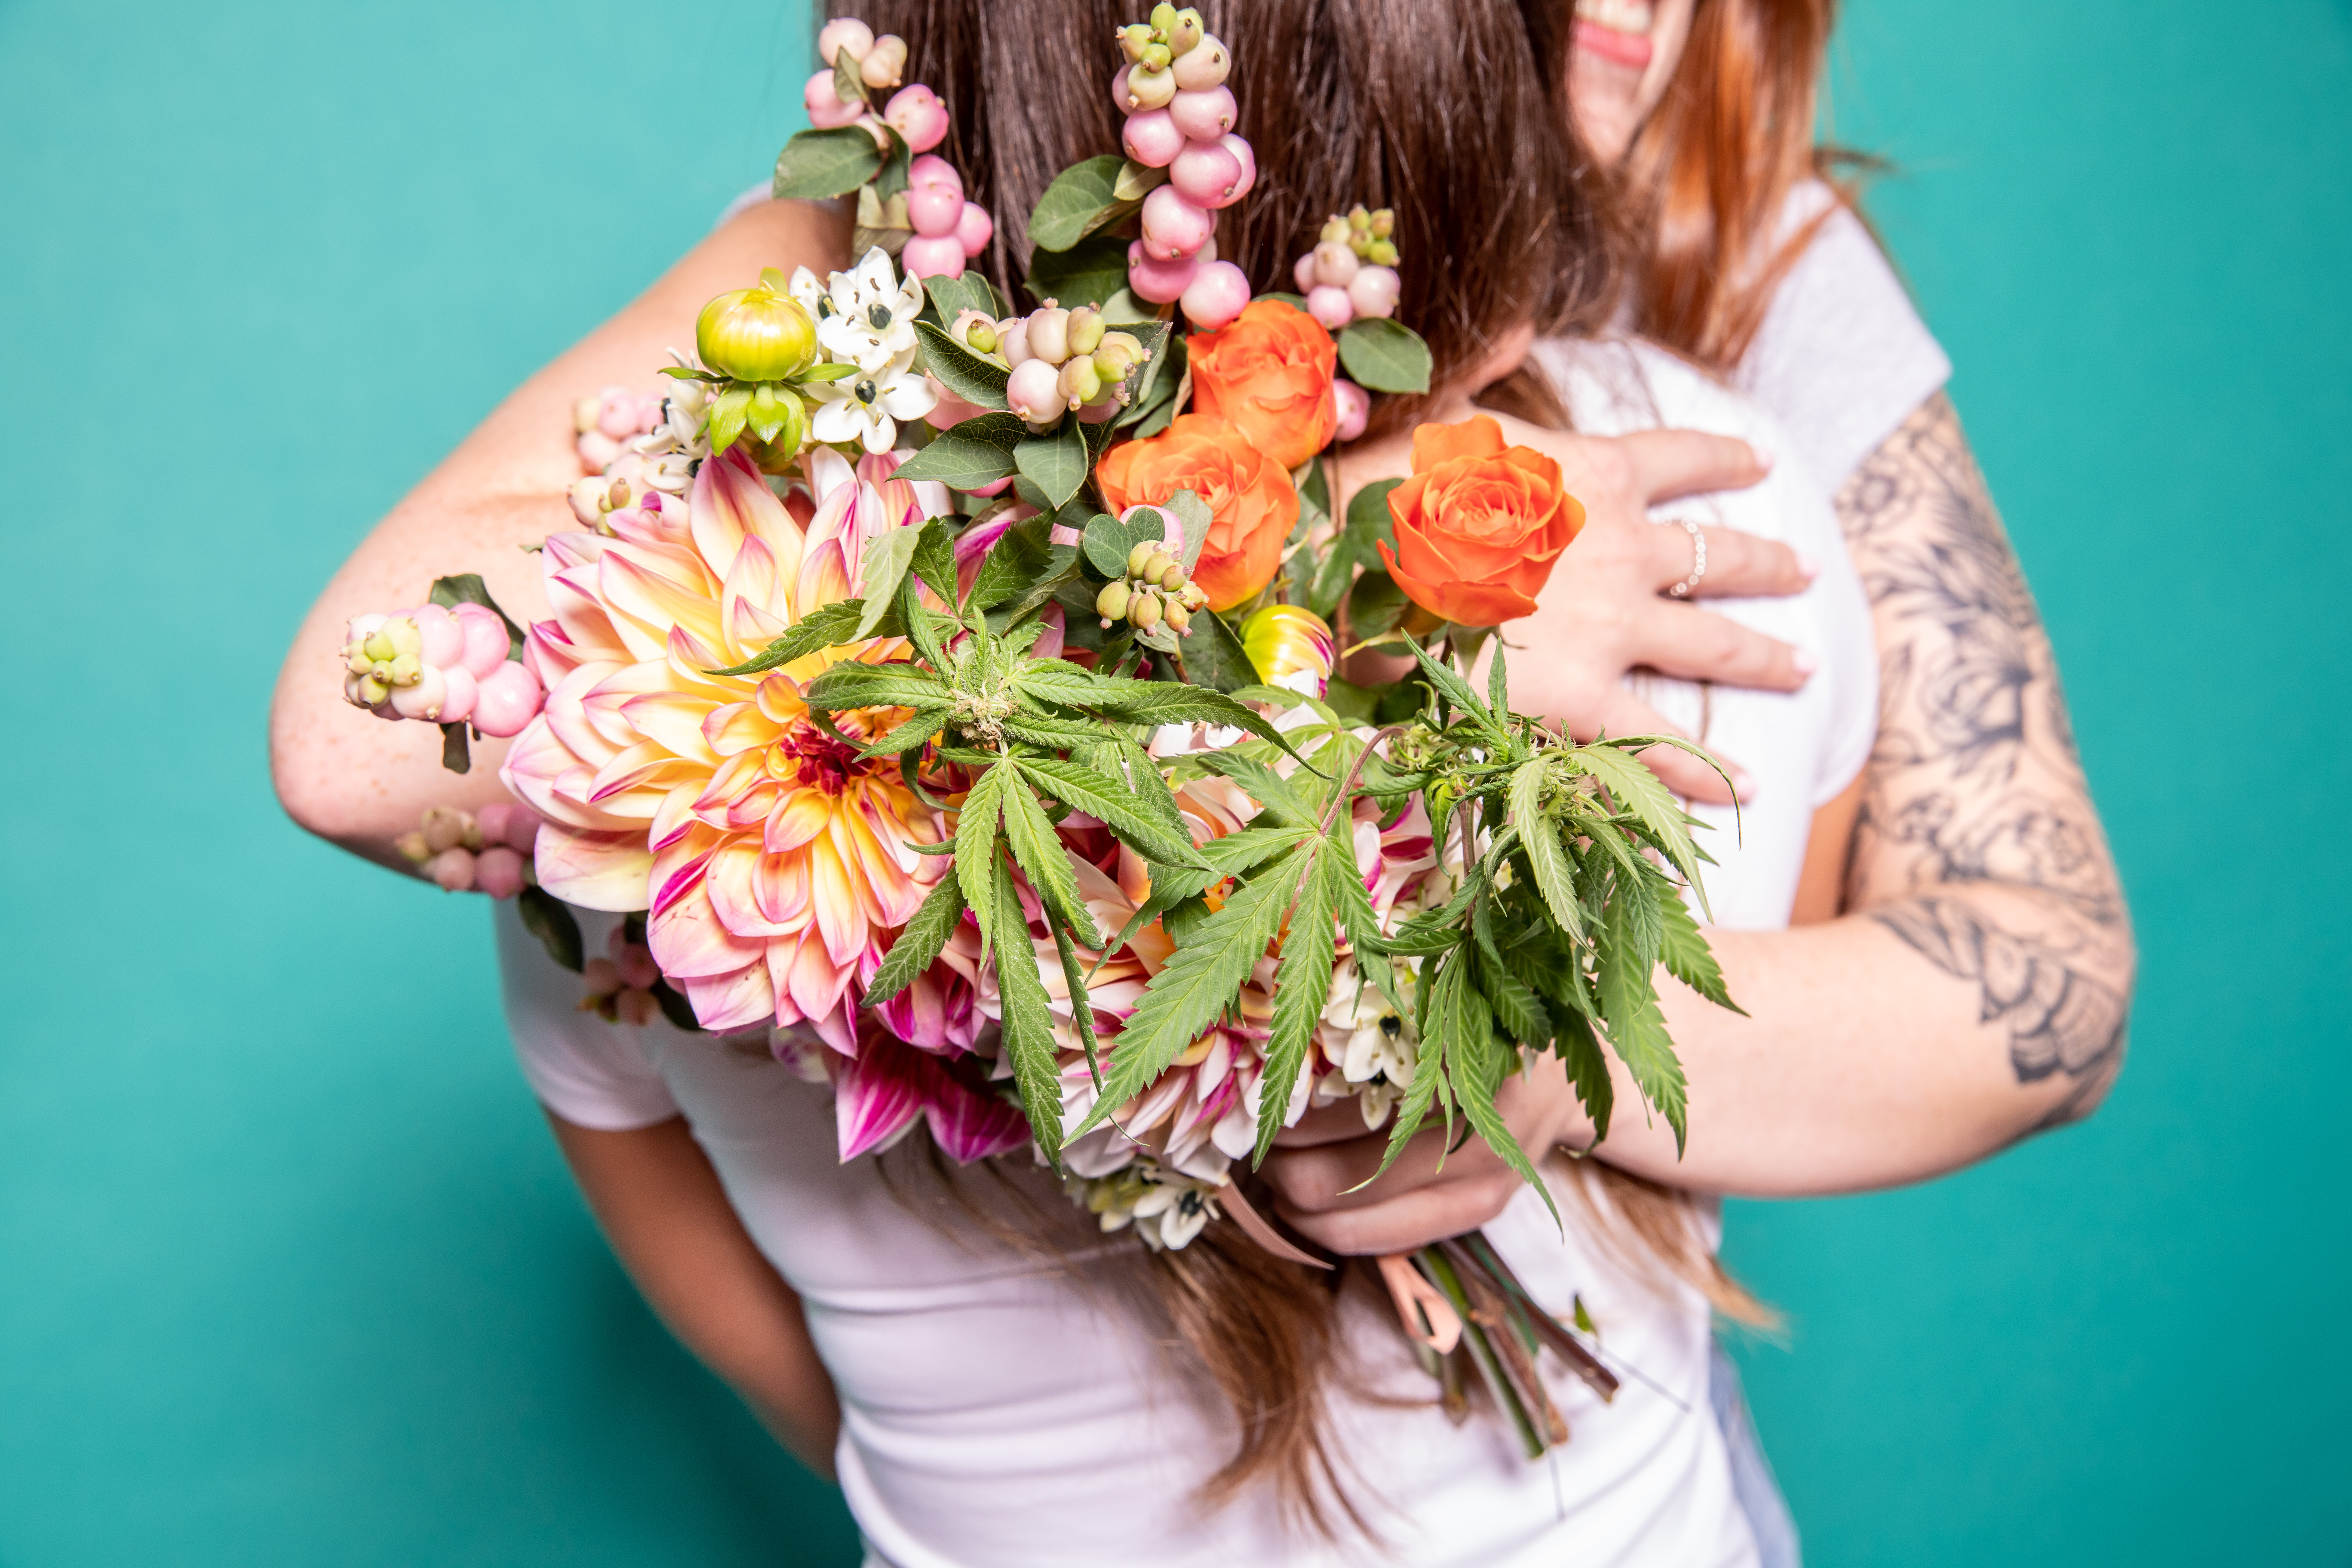 party etiquette, people hugging with bouquet of cannabis flowers